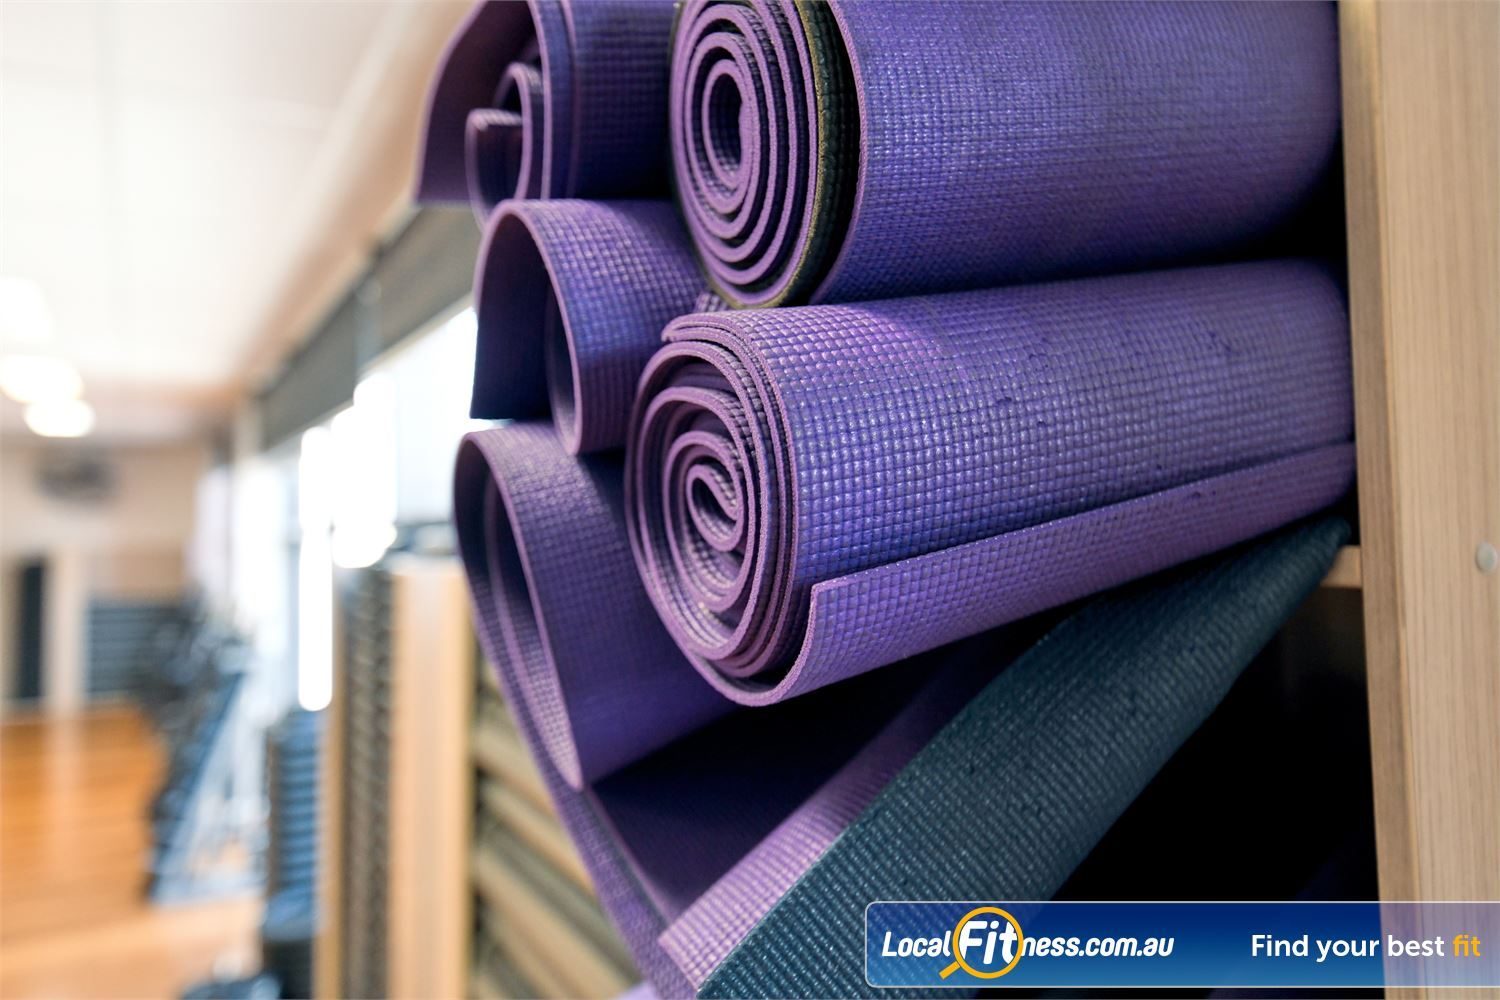 Goodlife Health Clubs Port Melbourne Relax with our range of Port Melbourne Yoga and Pilates classes.